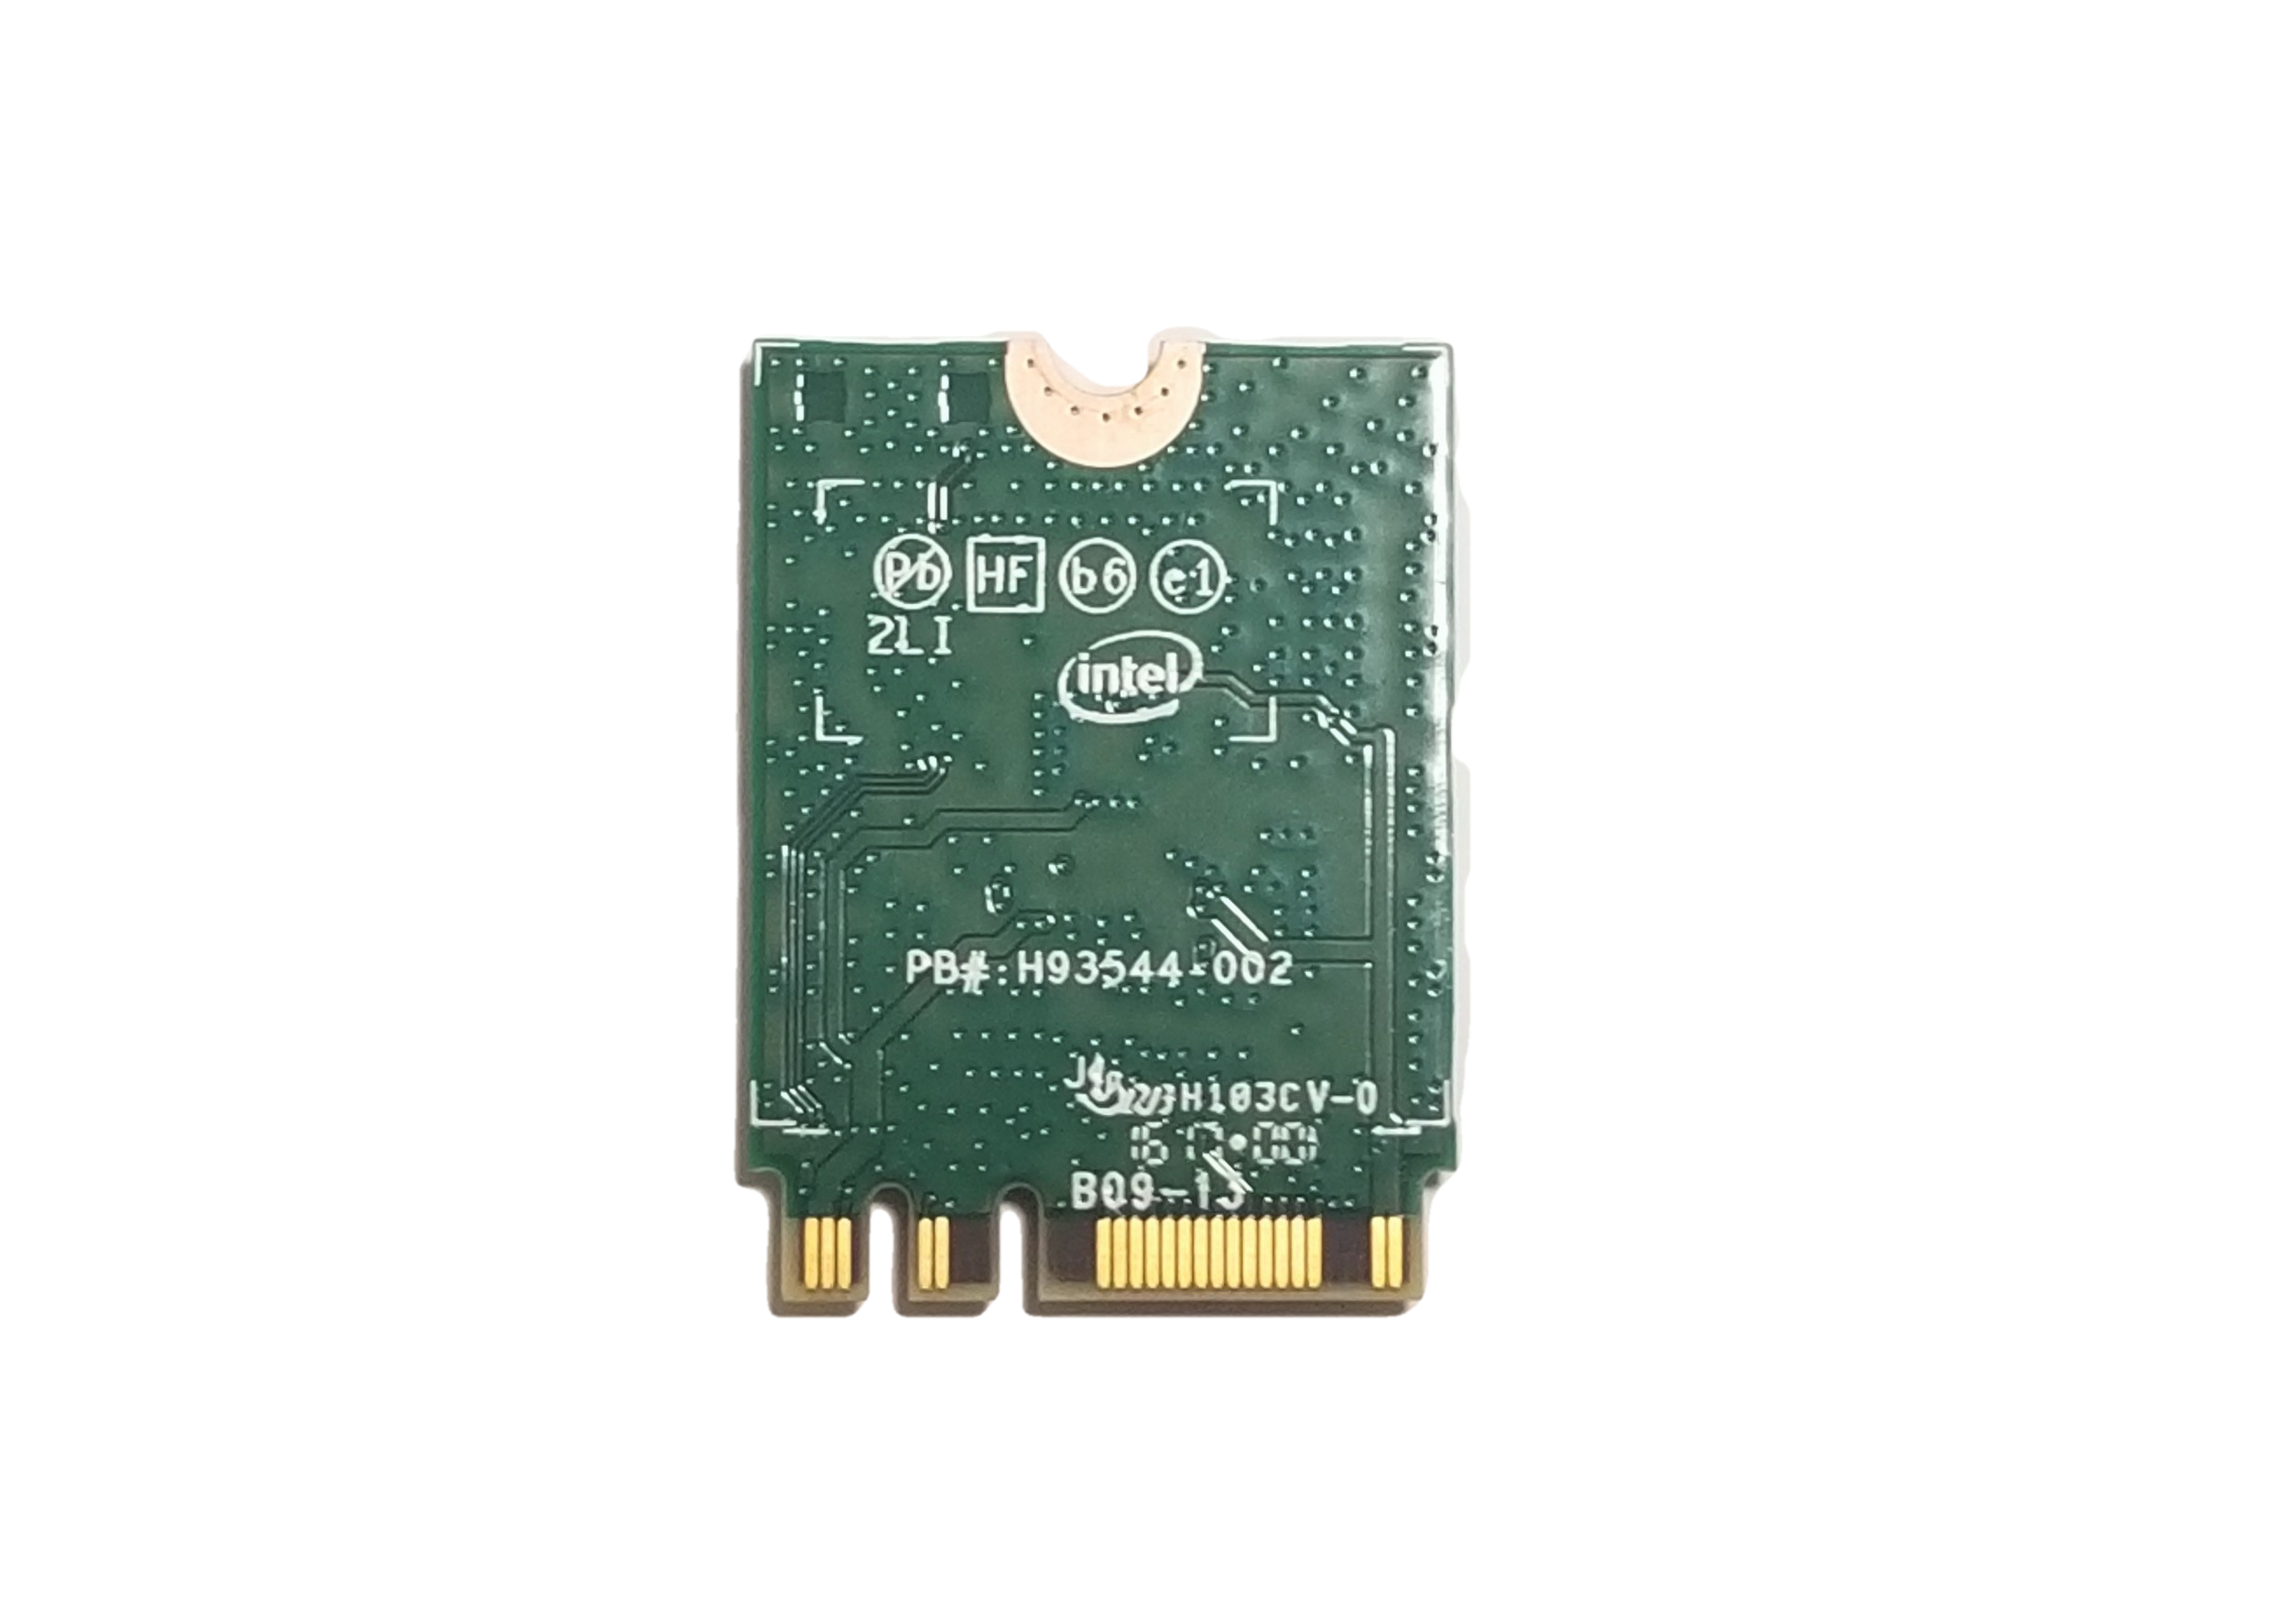 Lenovo 11  N24 Winbook WiFi Card / Wireless Card / Adapter - 01AX704